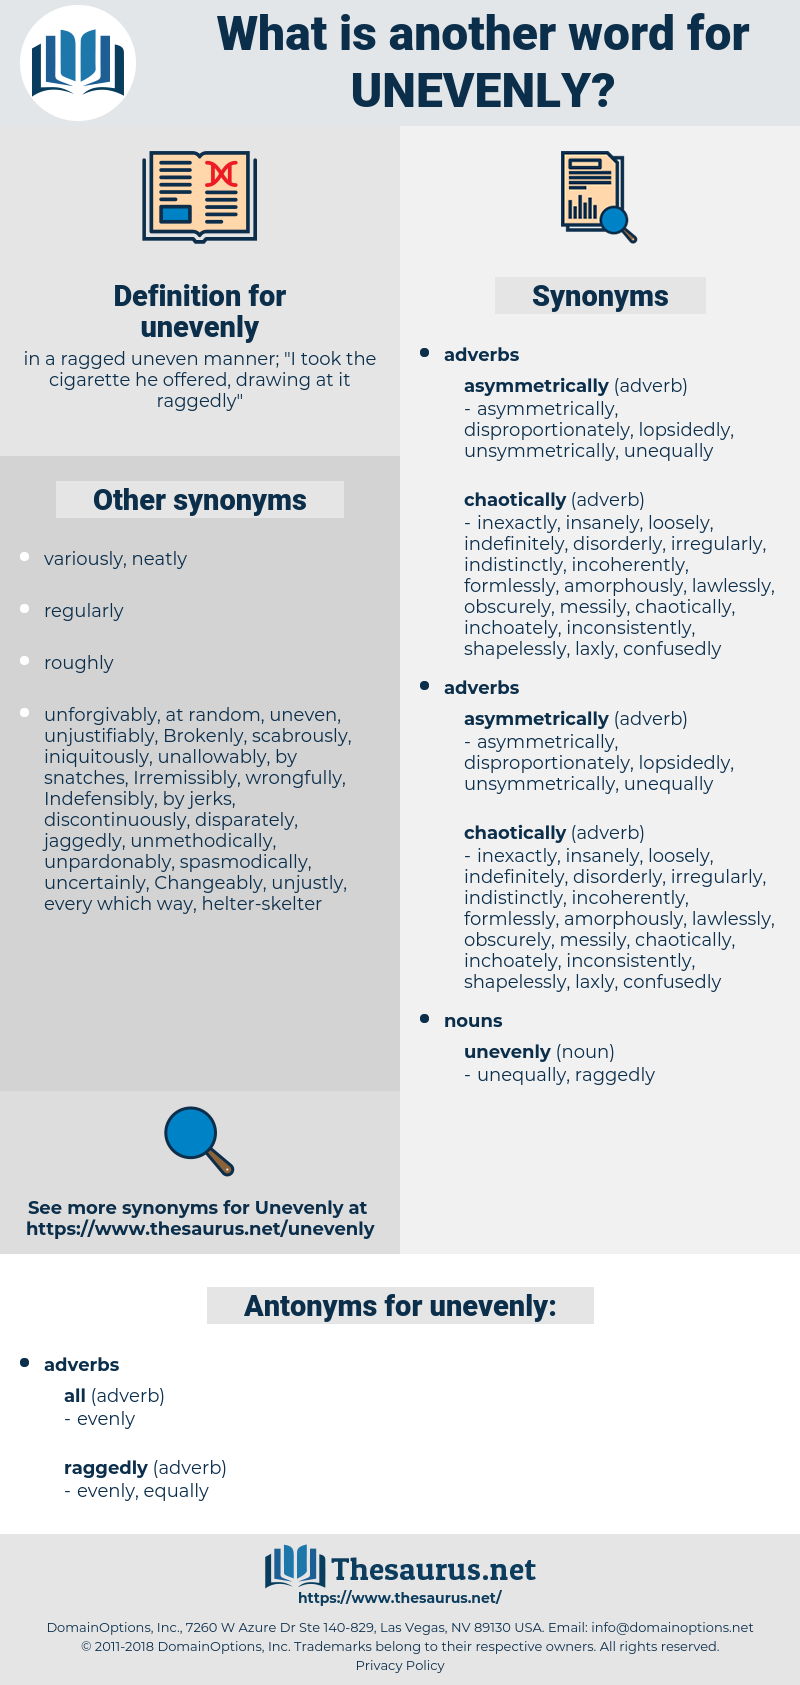 unevenly, synonym unevenly, another word for unevenly, words like unevenly, thesaurus unevenly